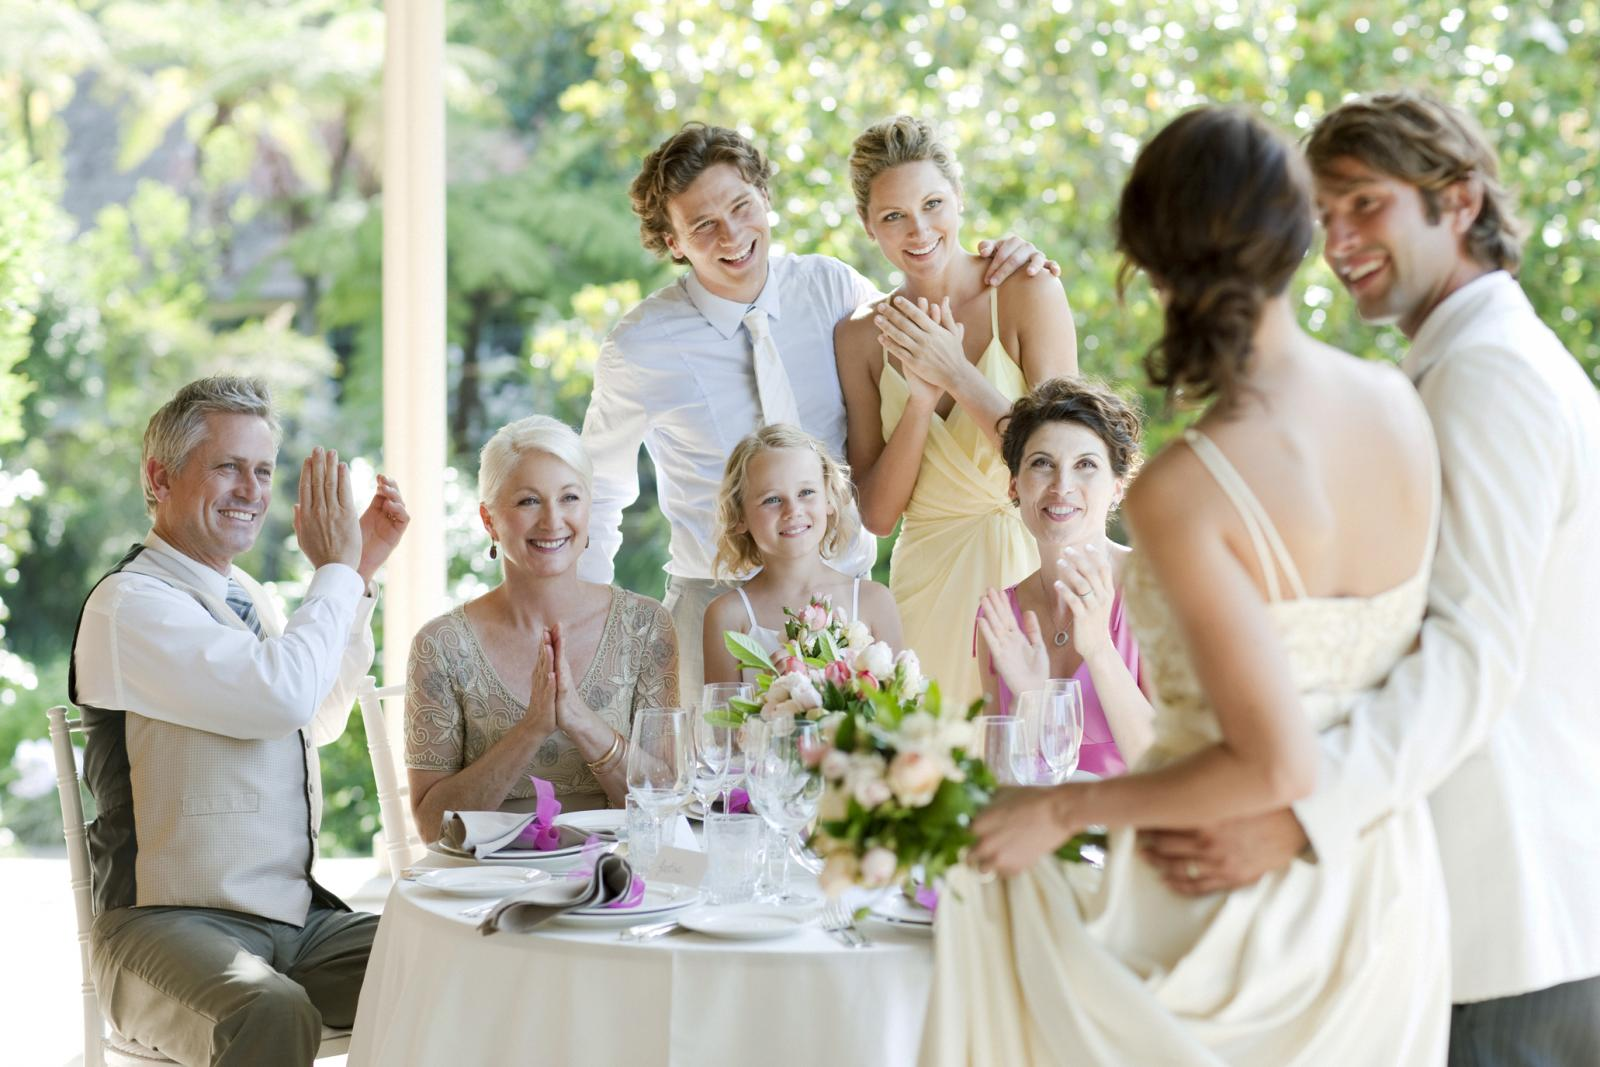 Guests celebrating at wedding reception